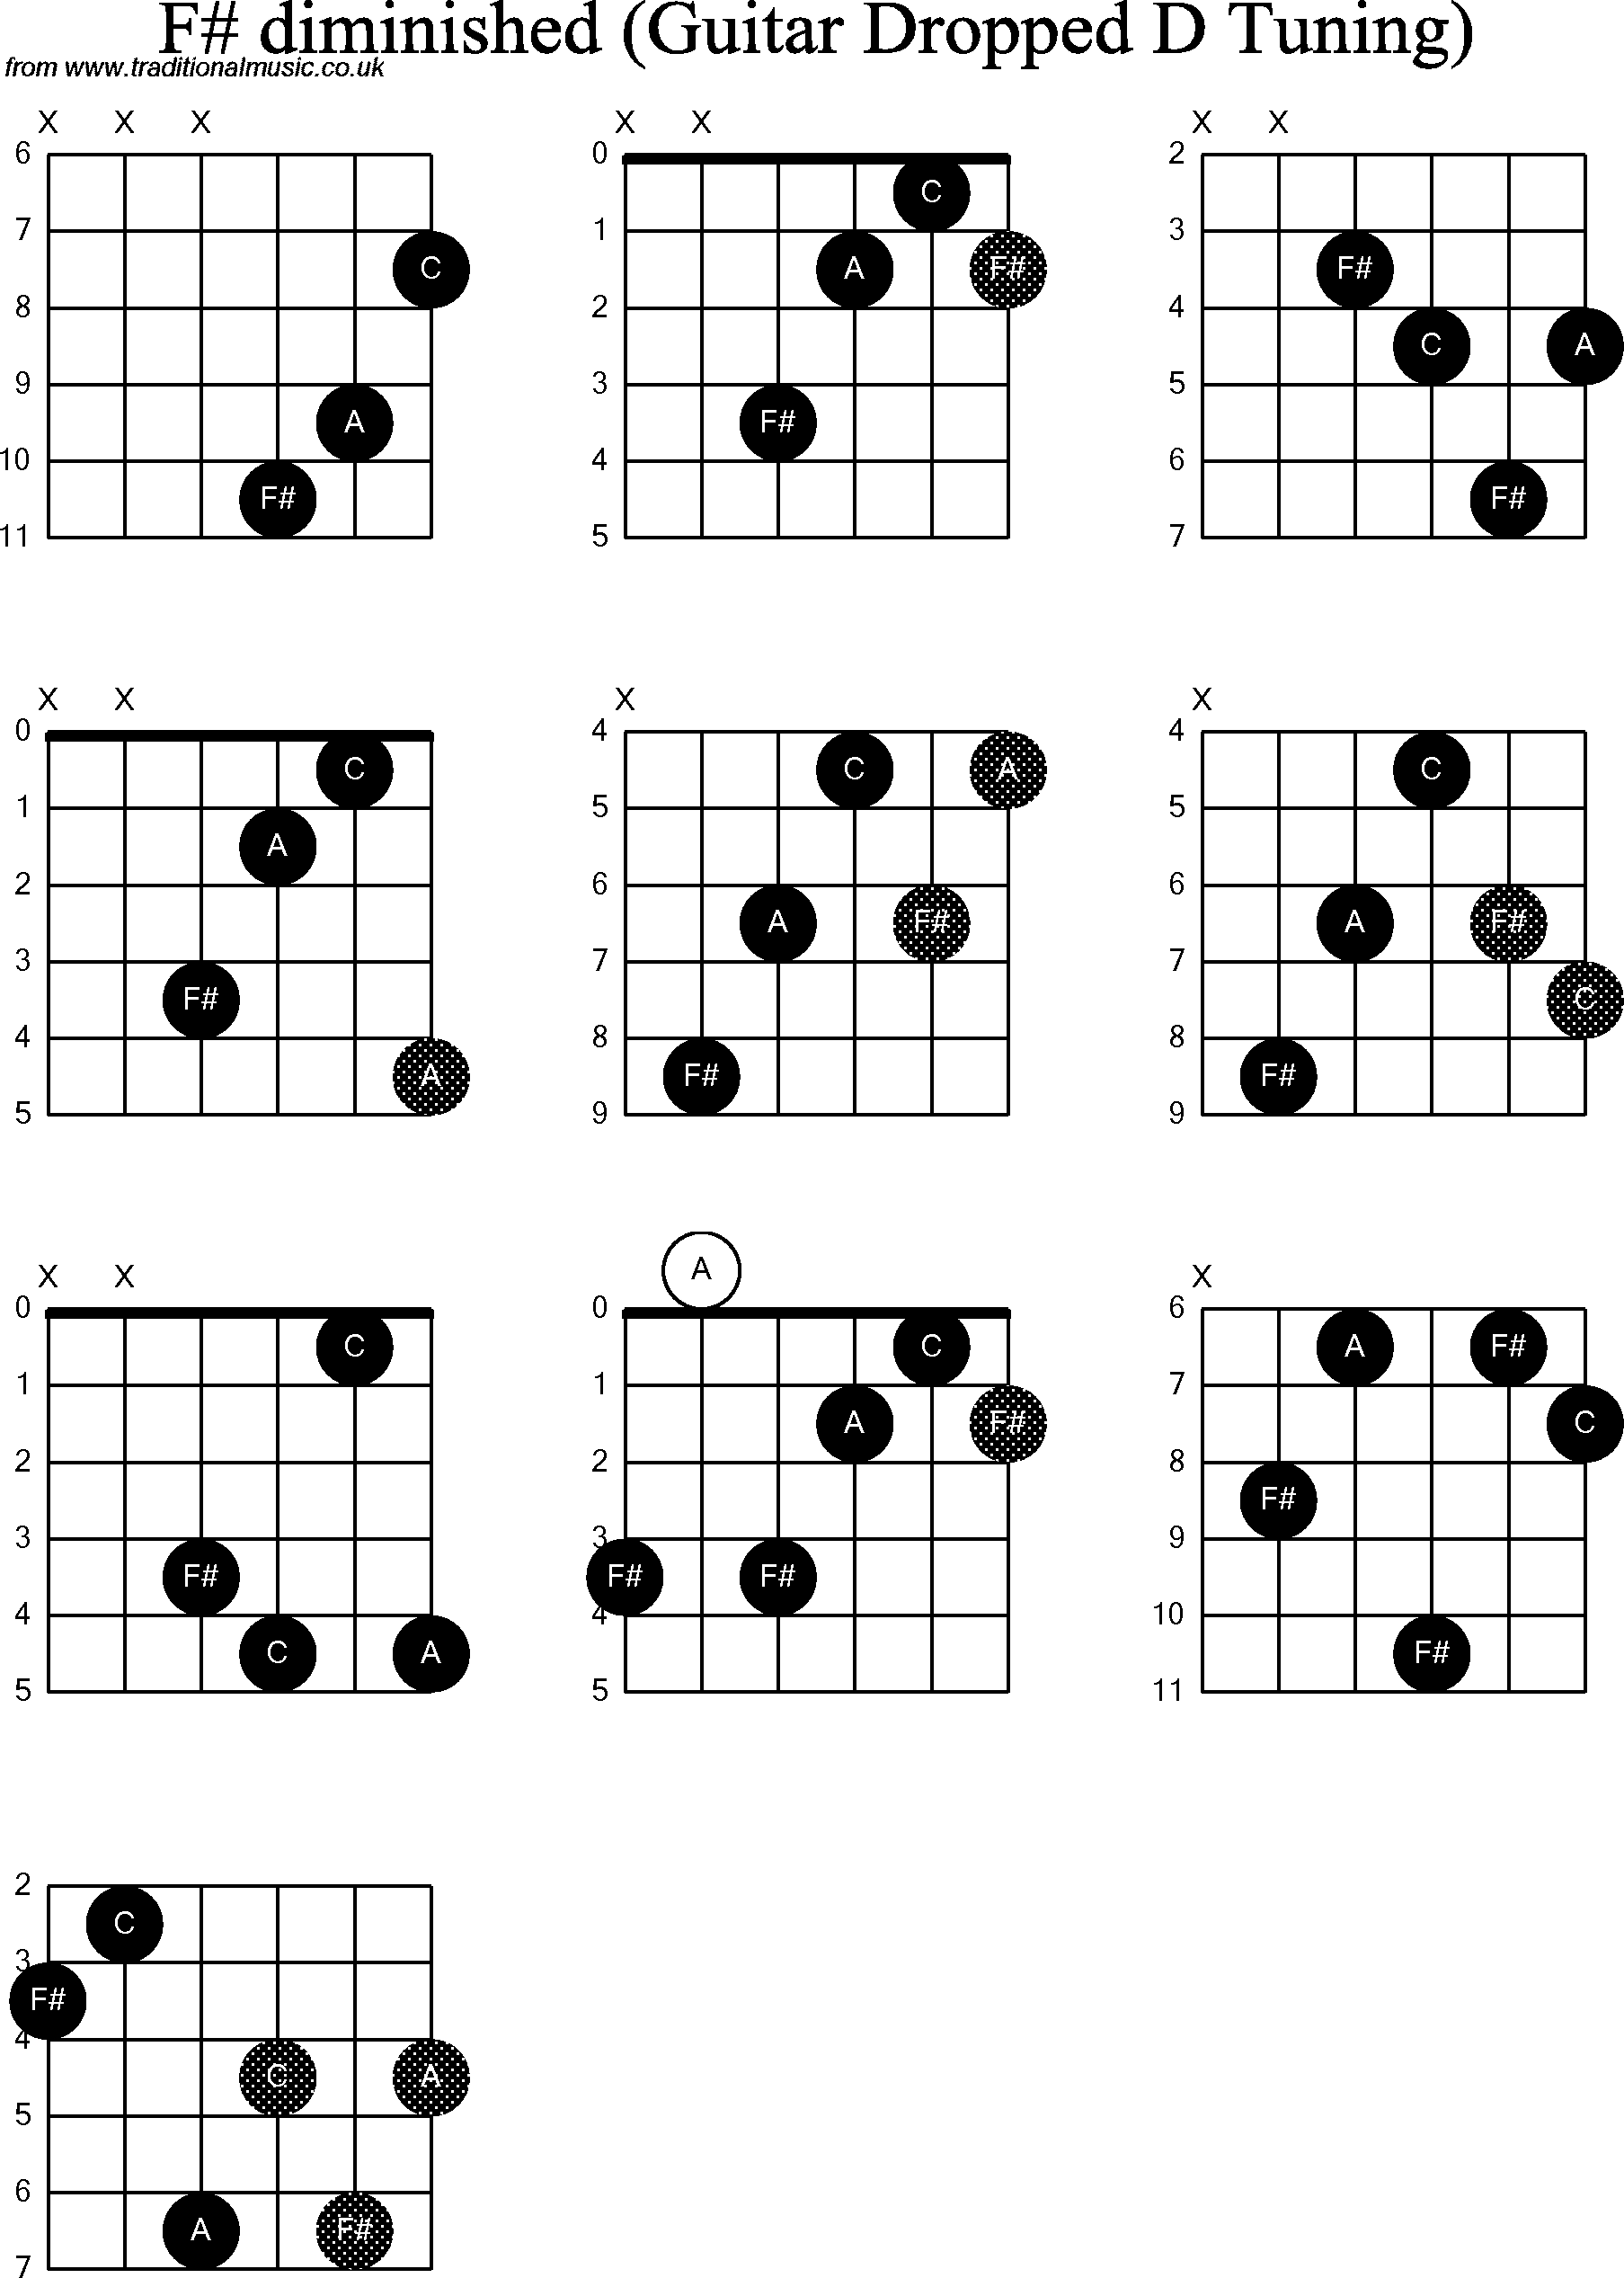 Chord Diagrams For Dropped D Guitardadgbe F Sharp Diminished